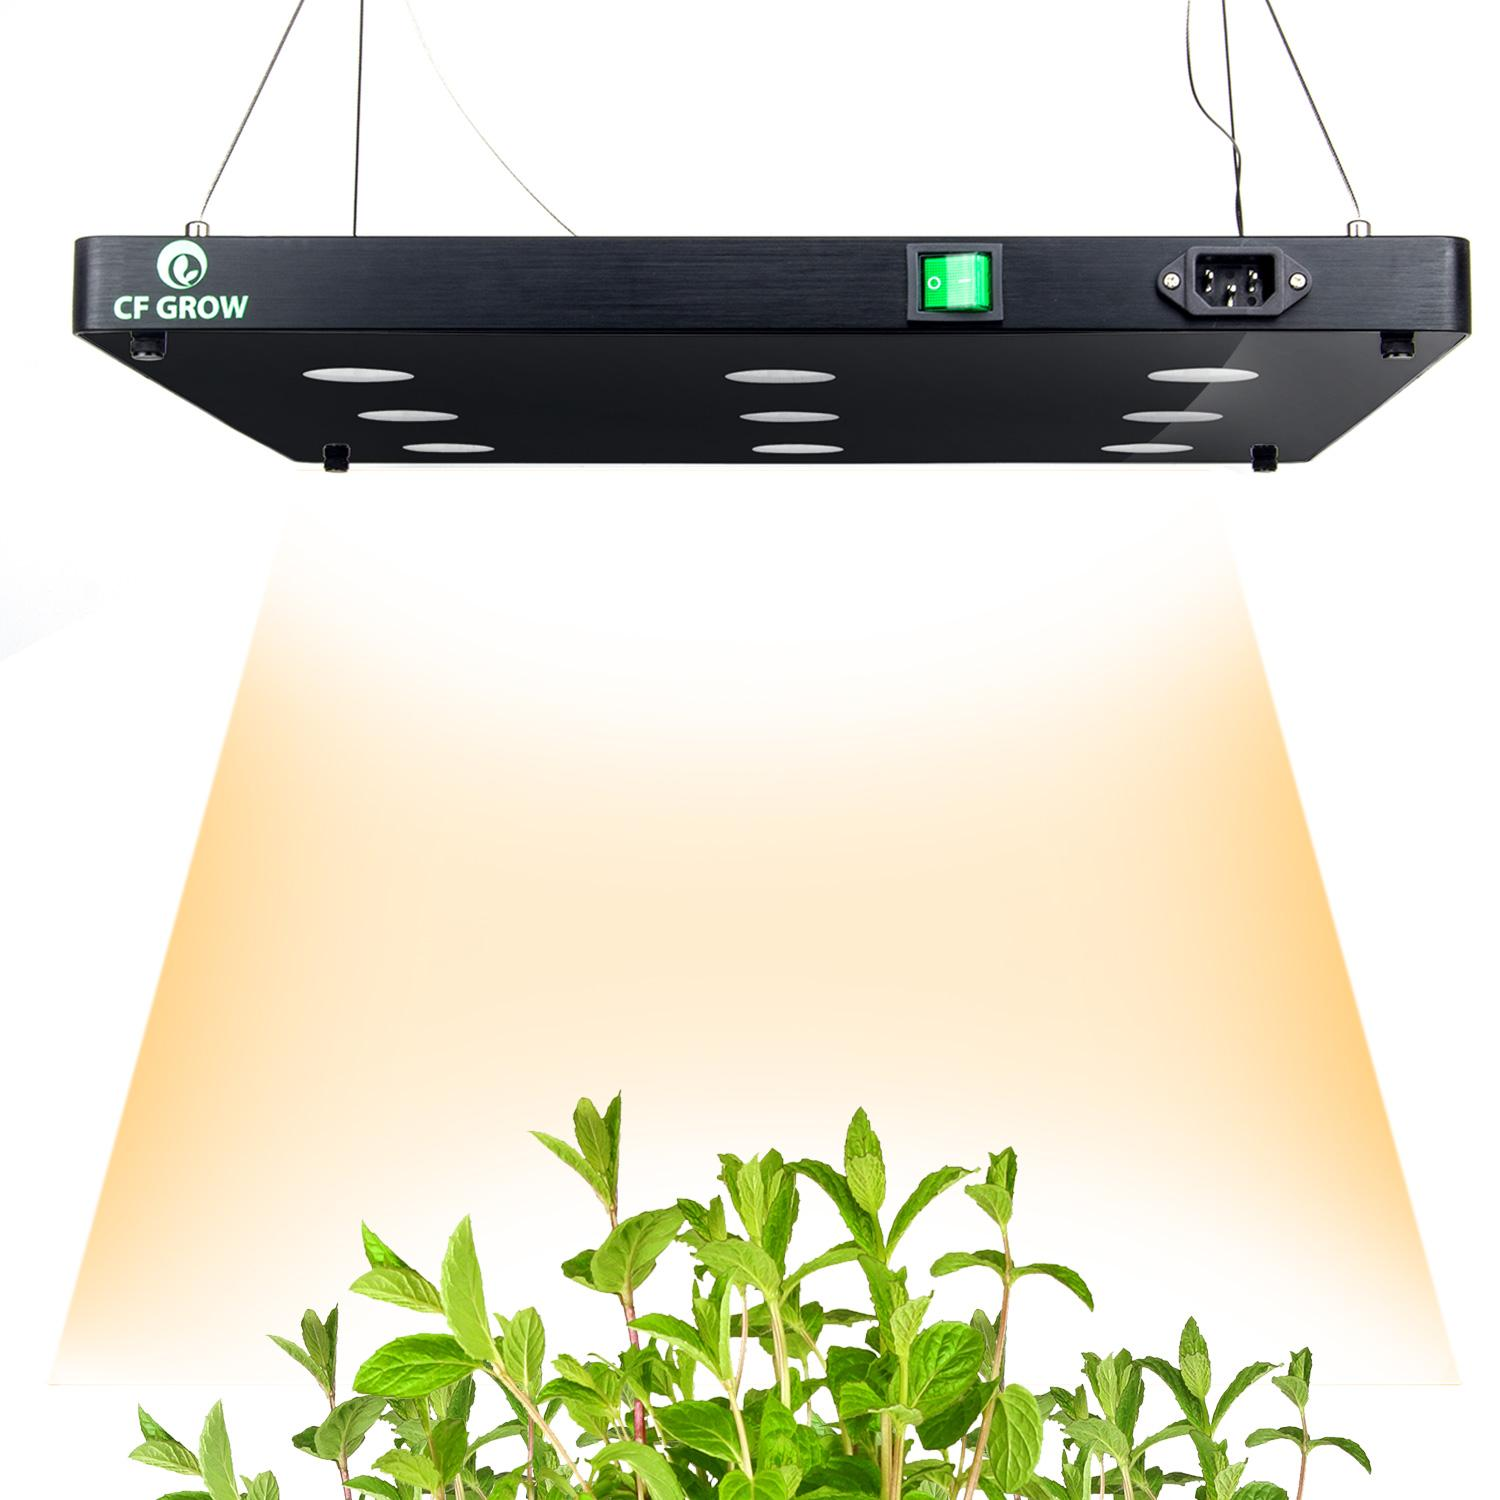 ultrathin blacksuns9 810w cob led plant grow light full spectrum growing panel for hydroponic plants all stage growth lighting full spectrum grow lights